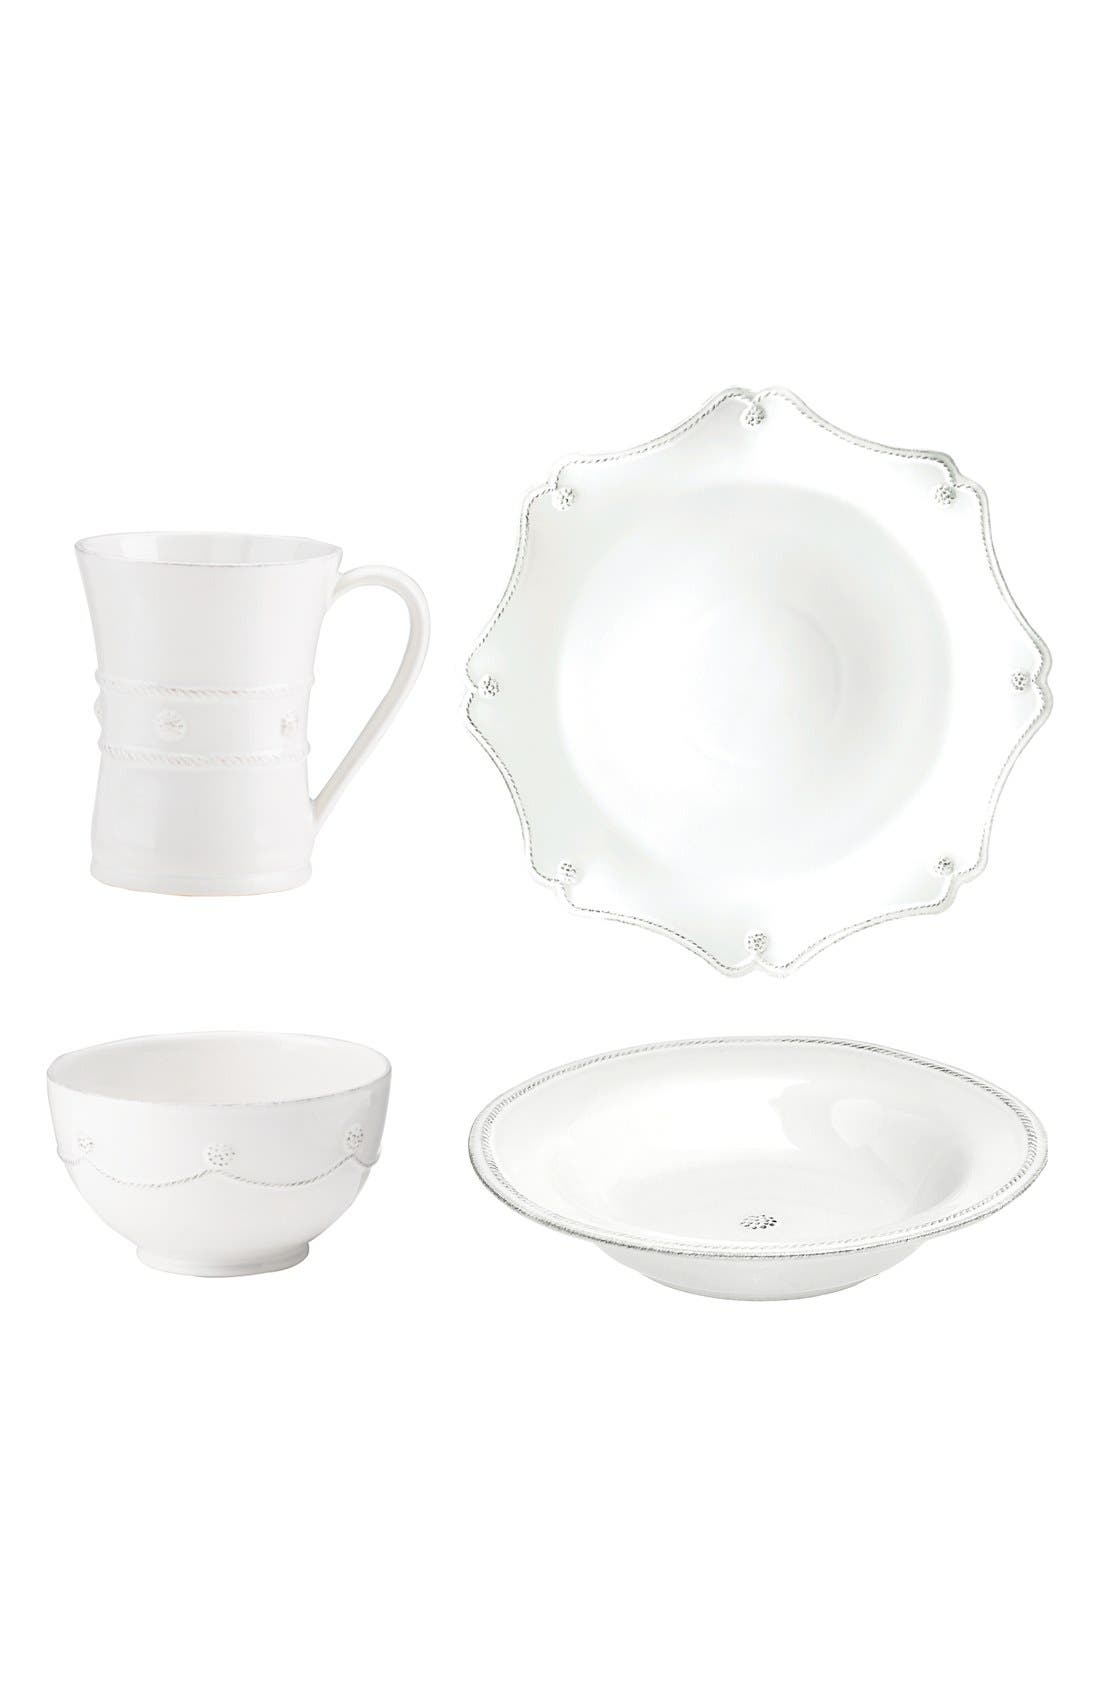 'Berry and Thread' 4-Piece Dinnerware Add-On Set,                             Main thumbnail 1, color,                             100